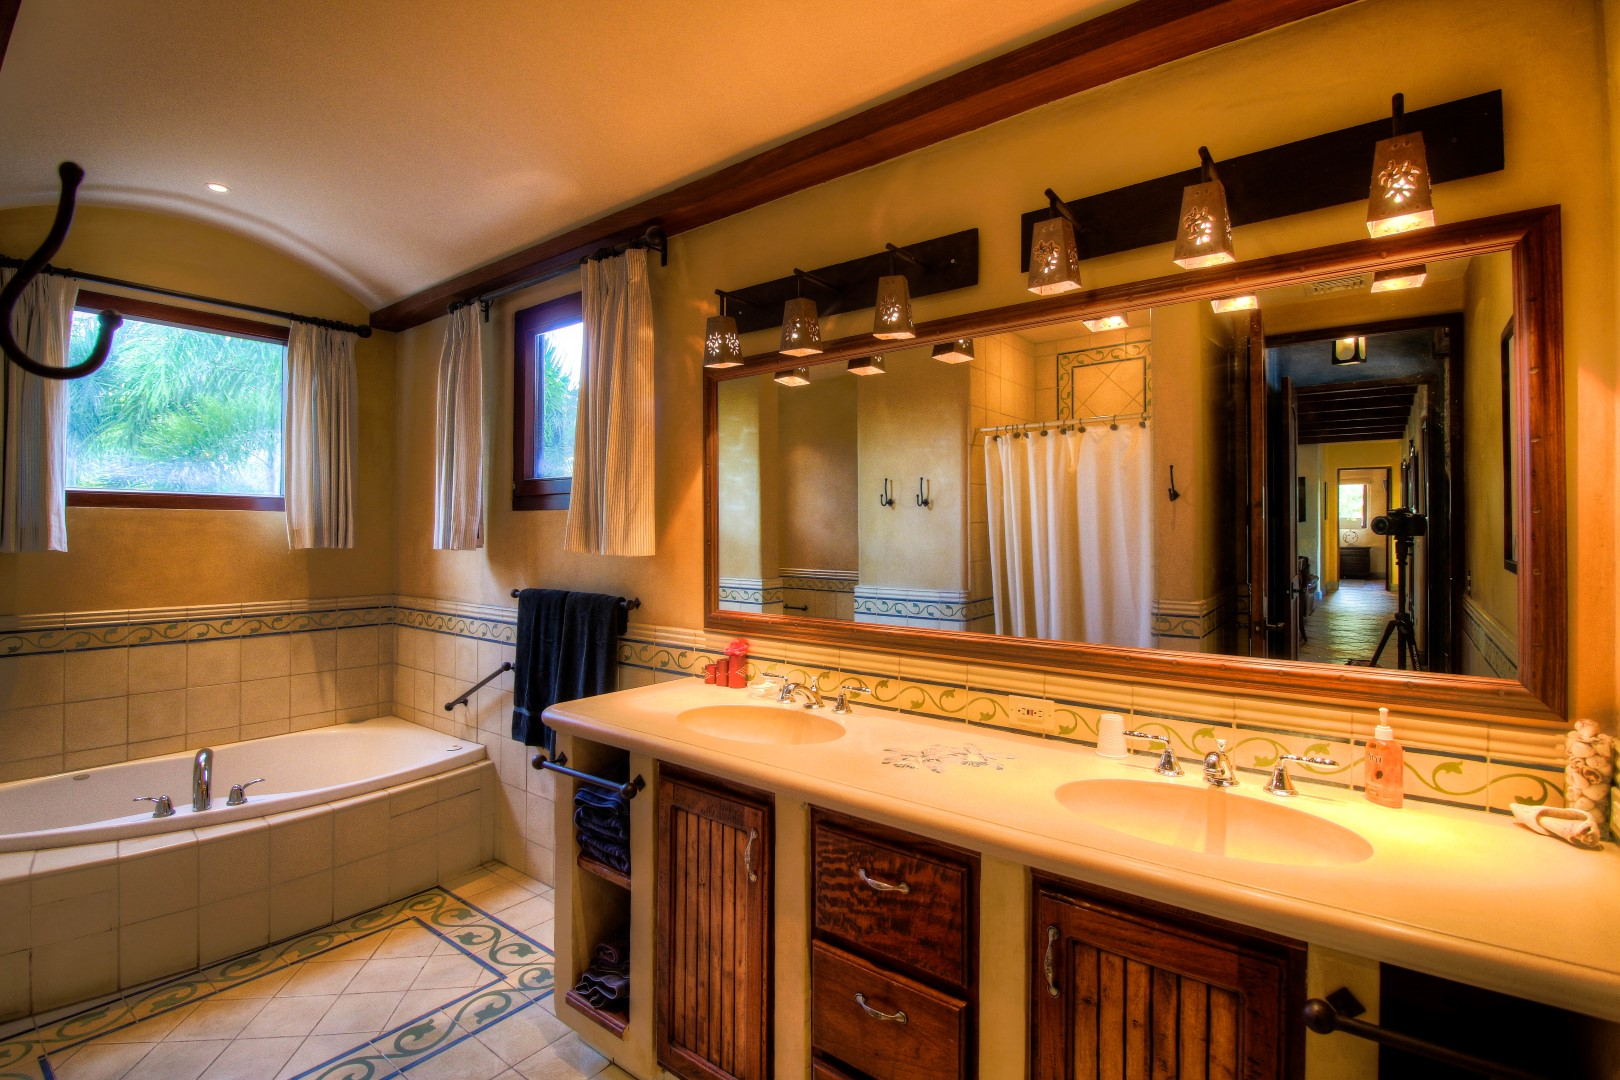 Bathroom with double sink, shower and tub